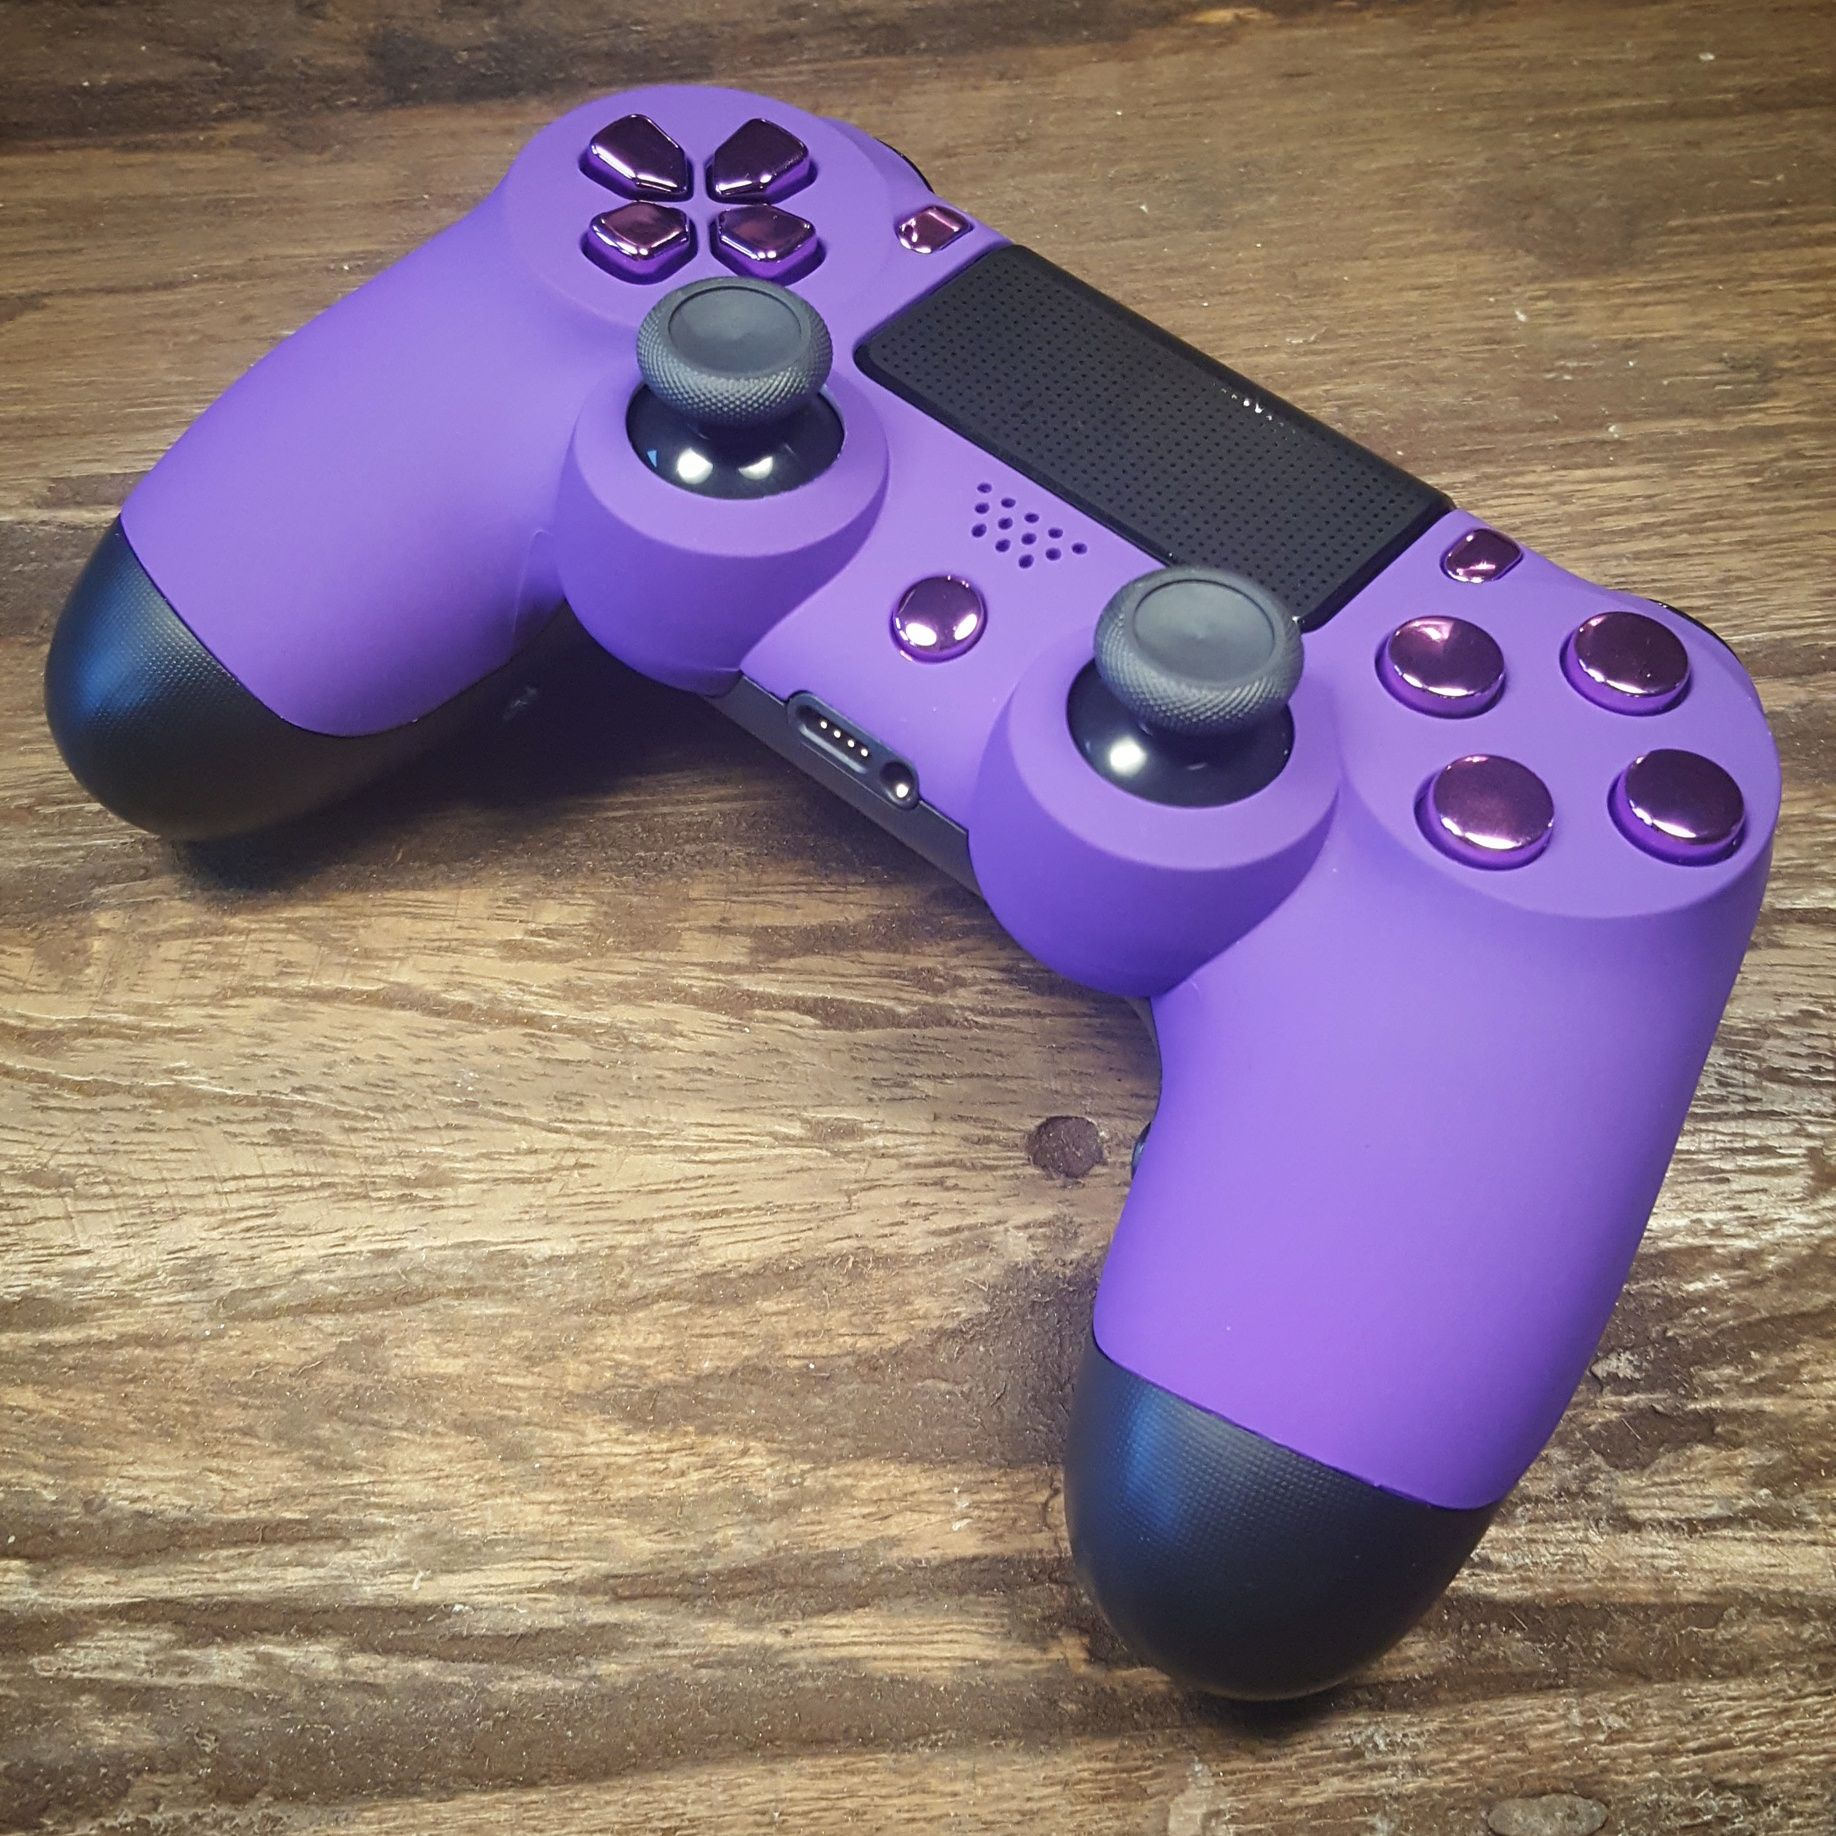 Custom Ps4 Controller With Soft Grip Front Shell Purple Buttons Xbox One And Shock Buttons Ps4 Controller Custom Playstation Controller Ps4 Controller